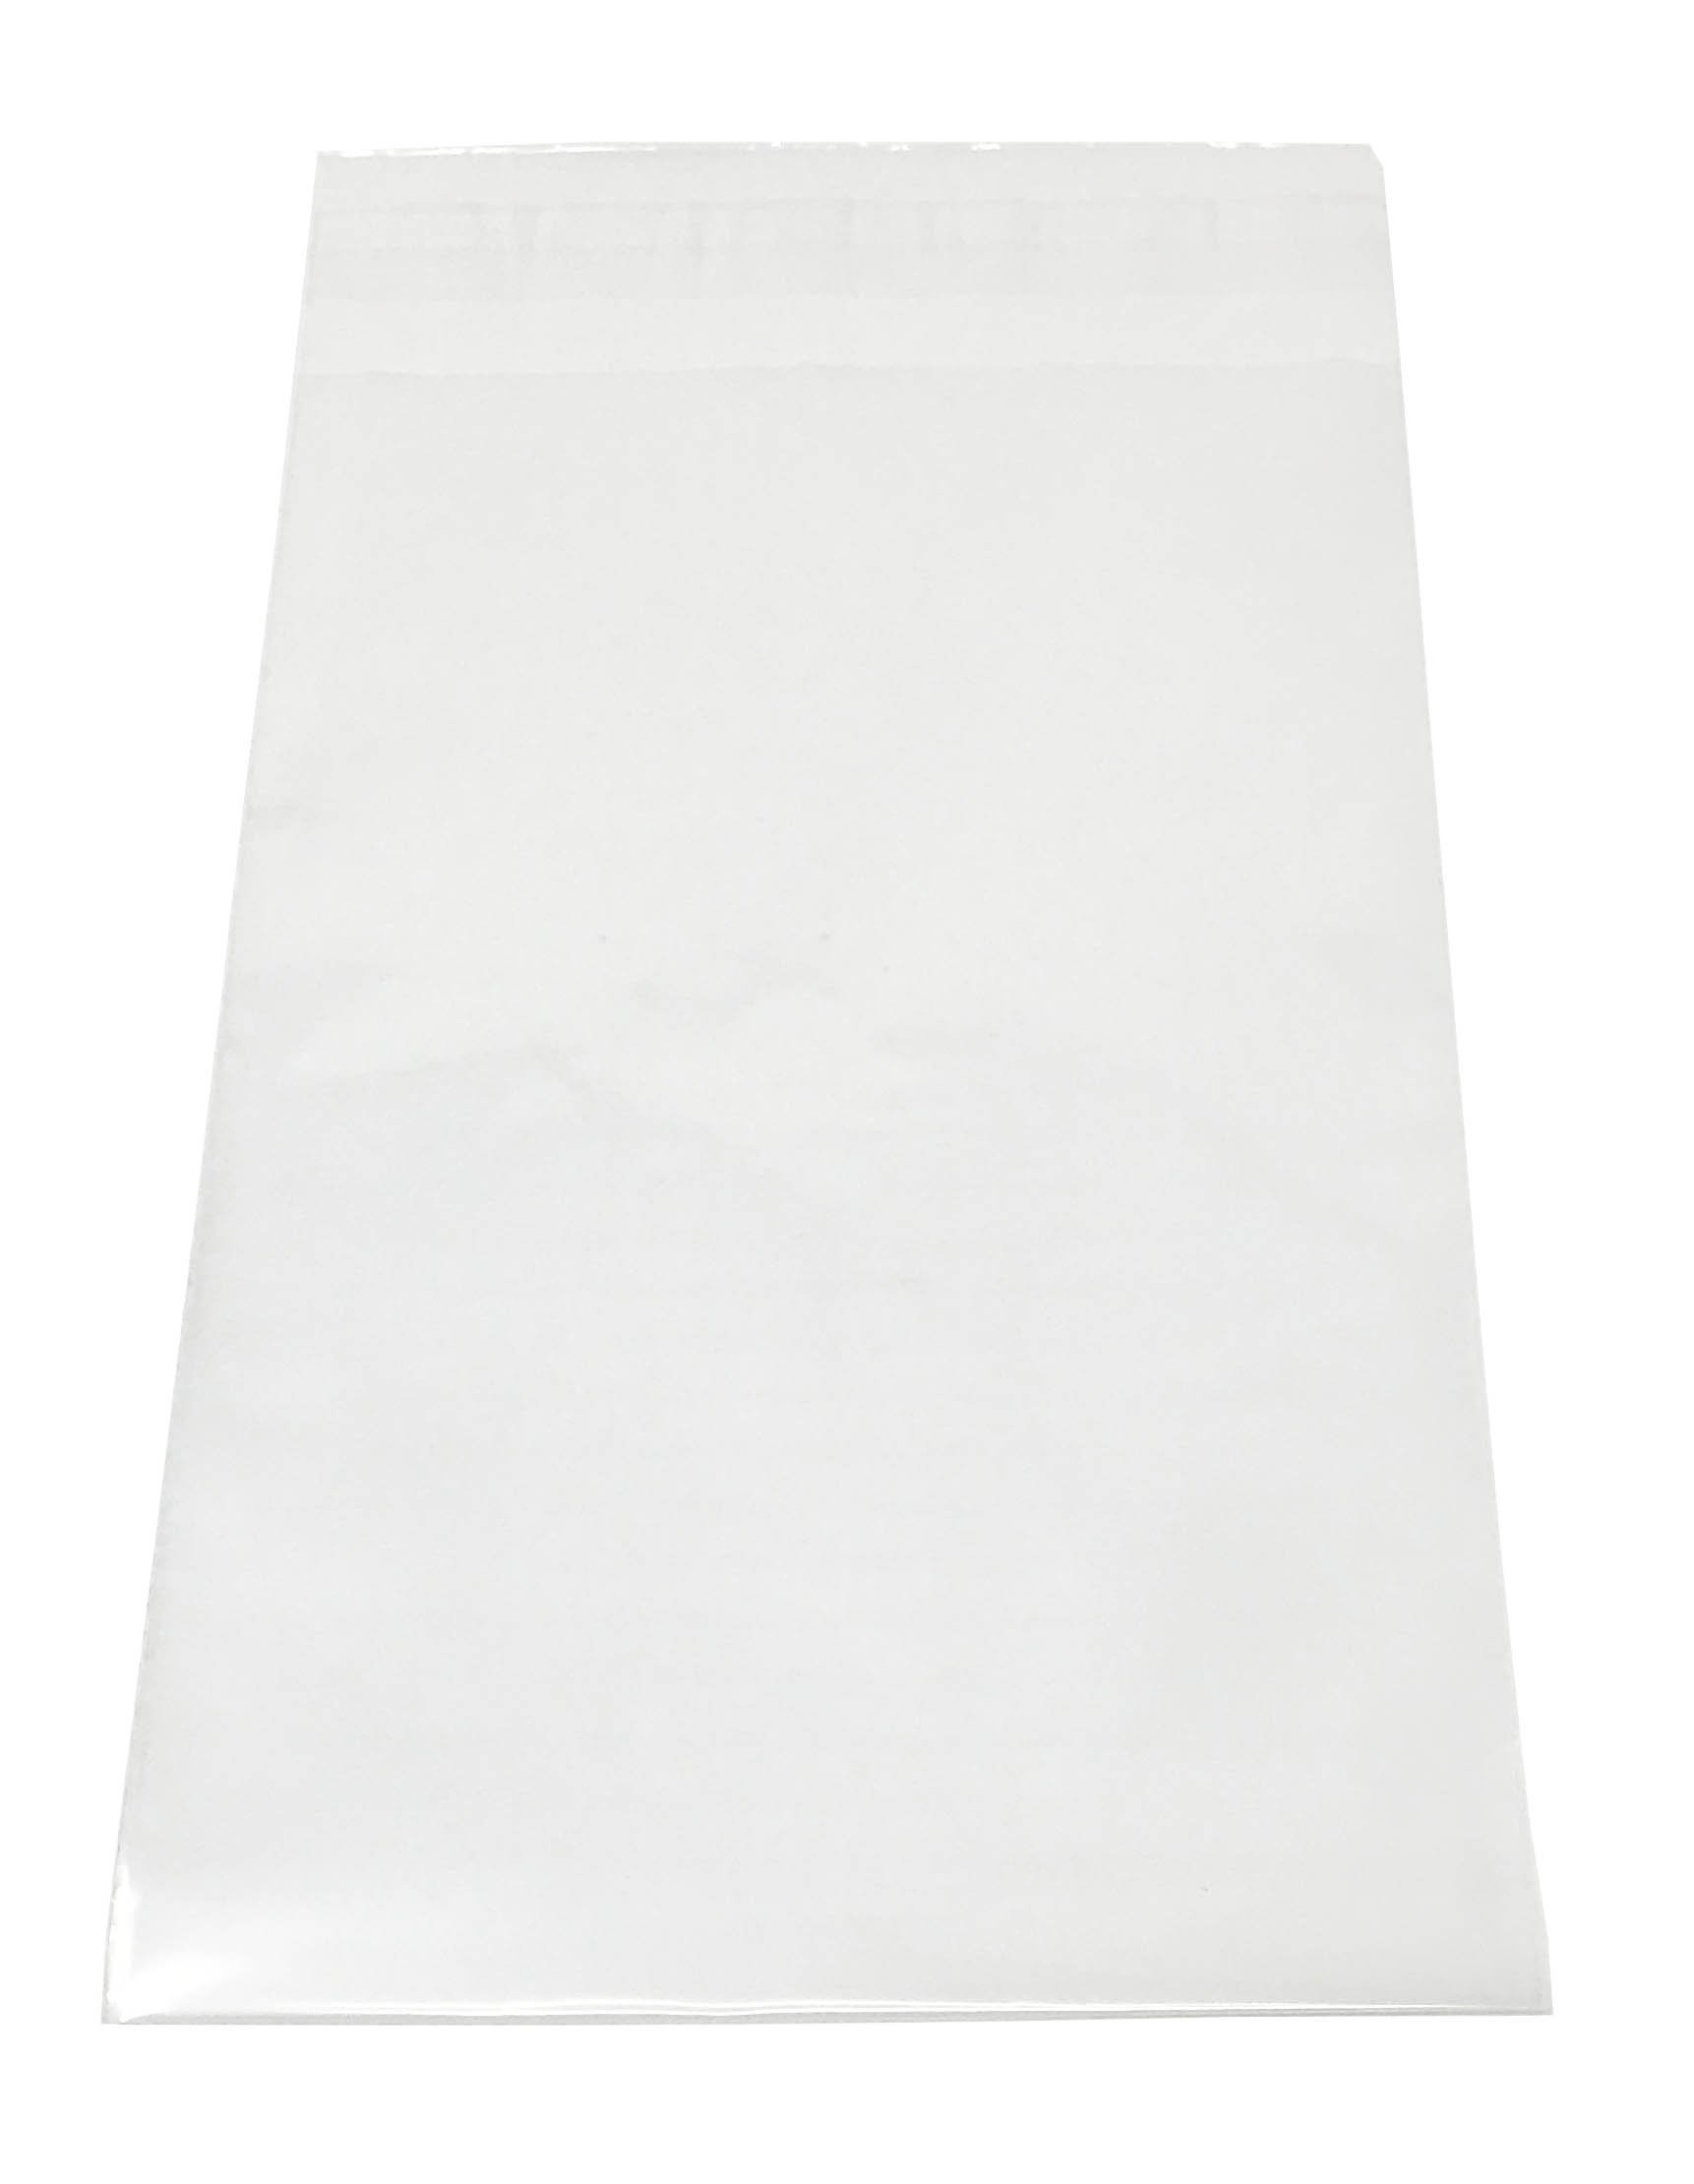 Shop4Mailers 9 x 12 Clear Plastic Self Seal Poly Bags 1.5 Mil (1000 Pack)